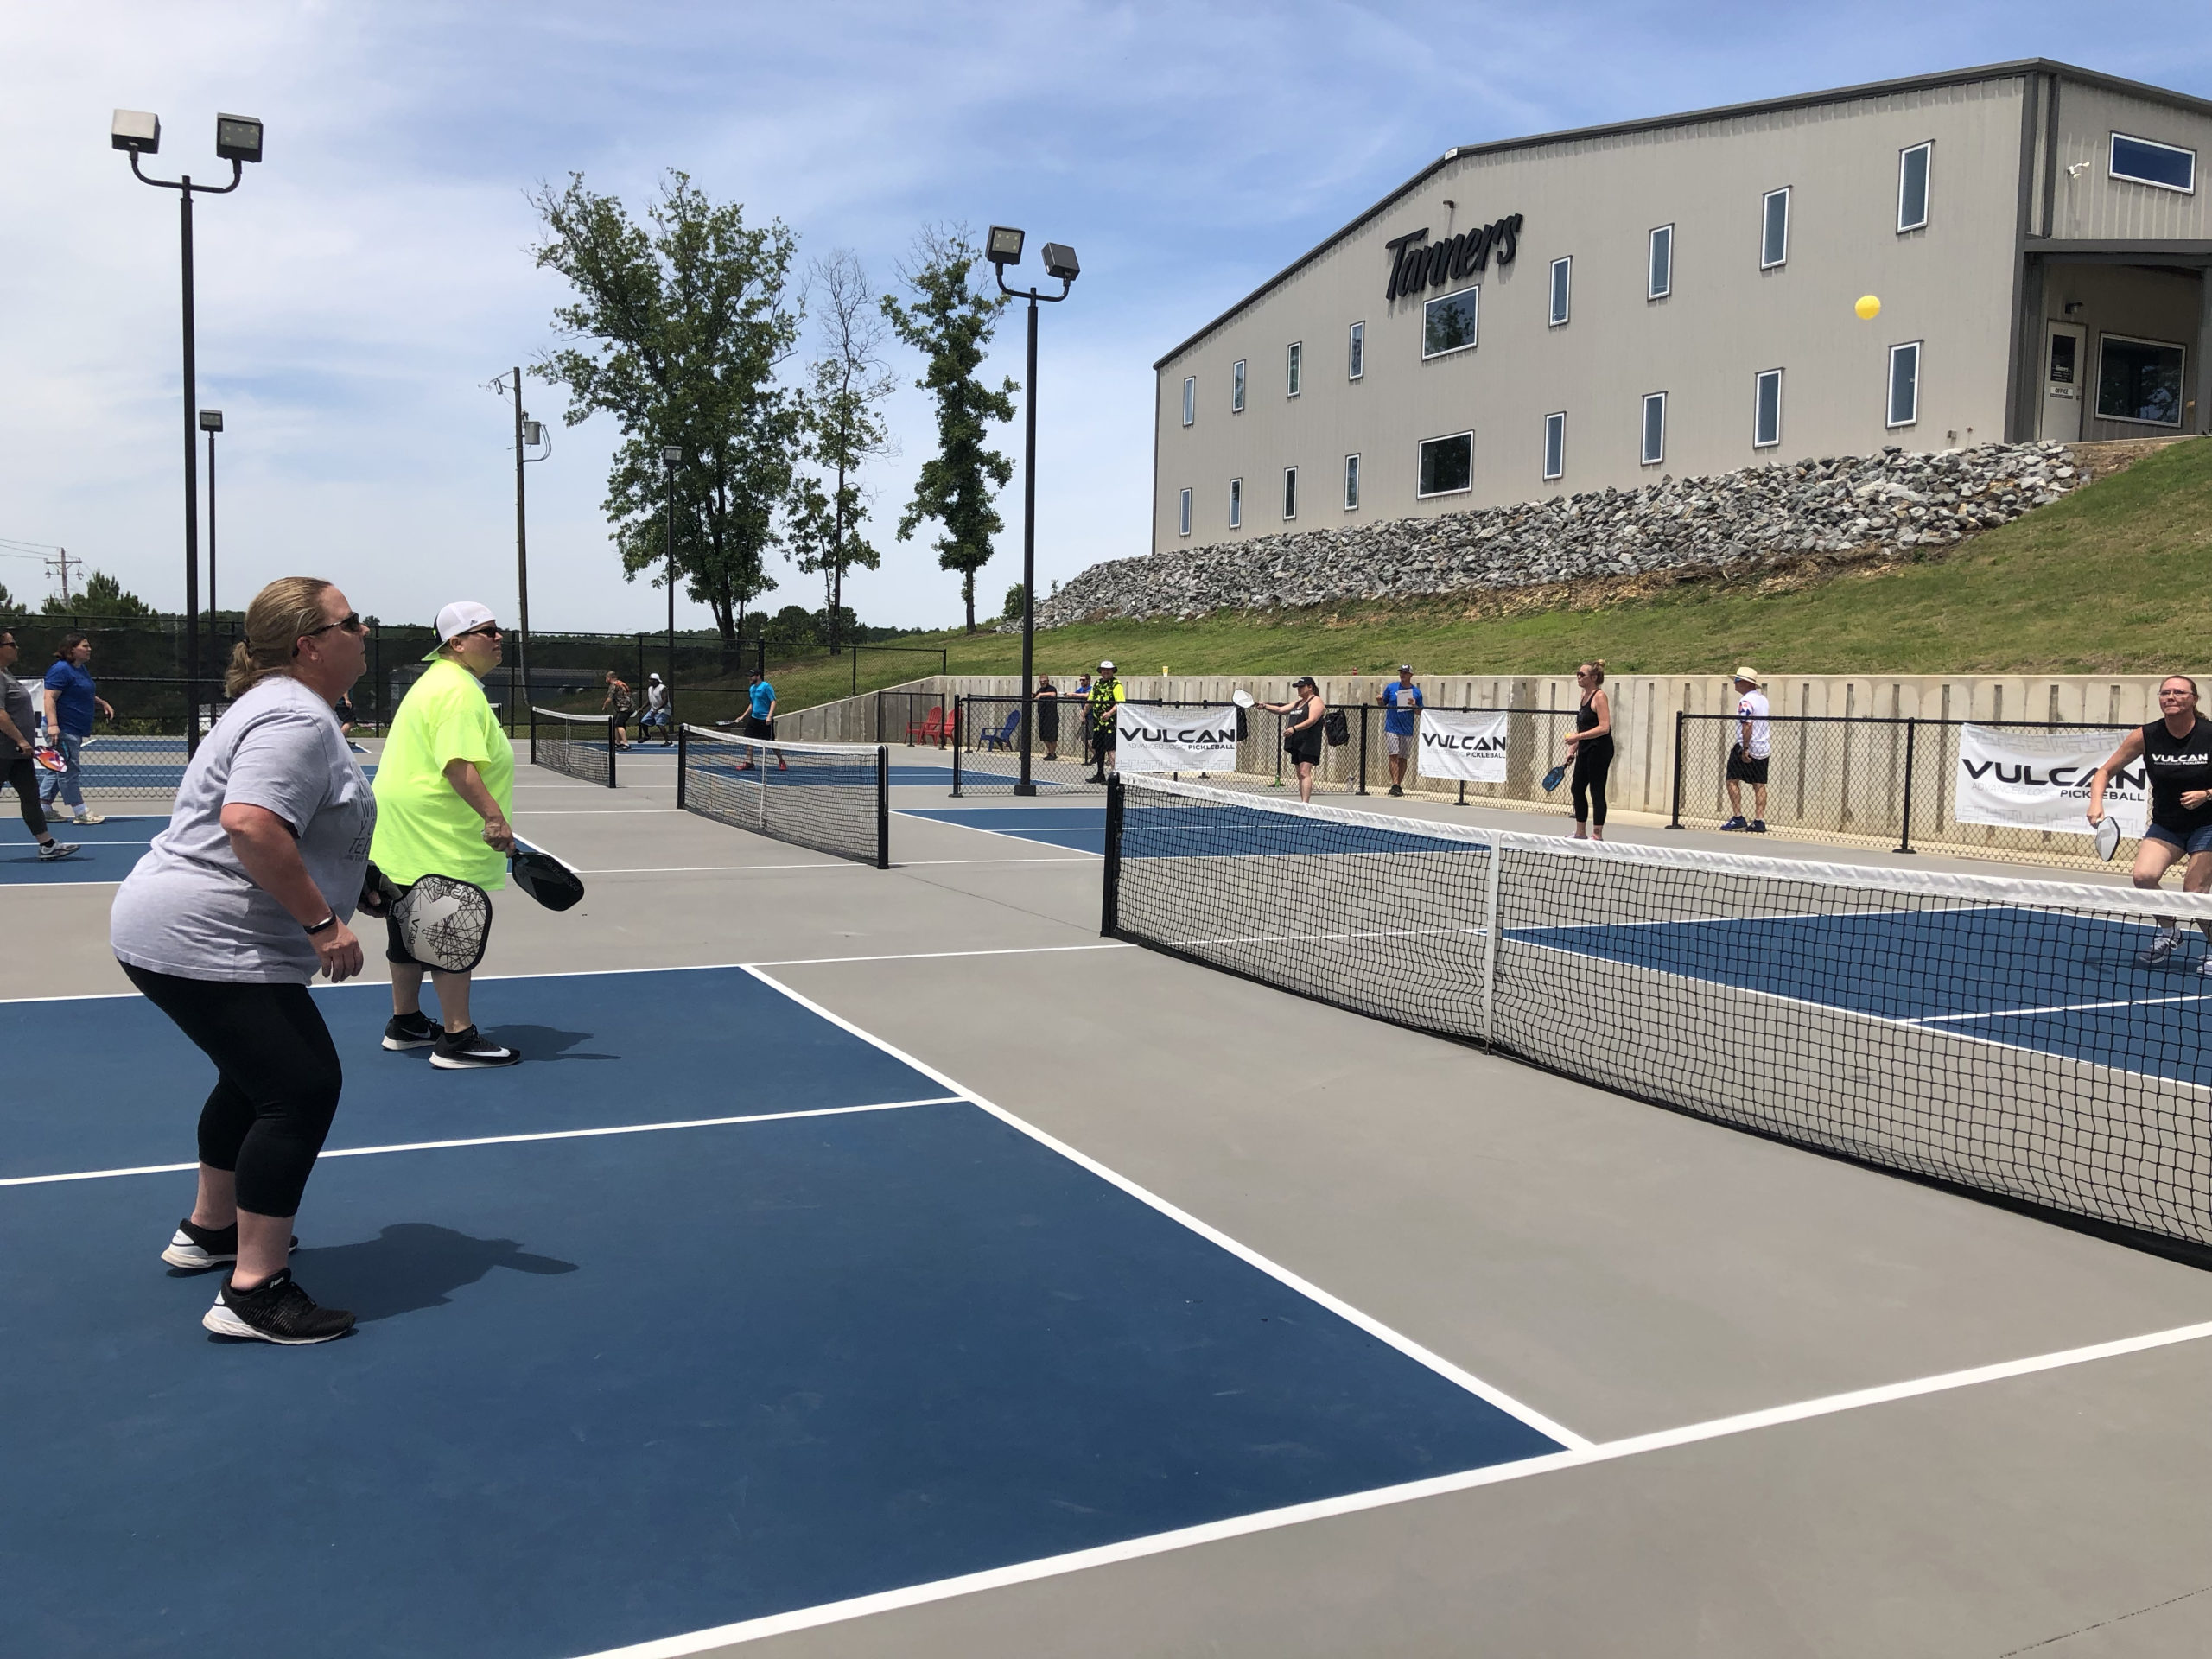 vulcan pickleball park